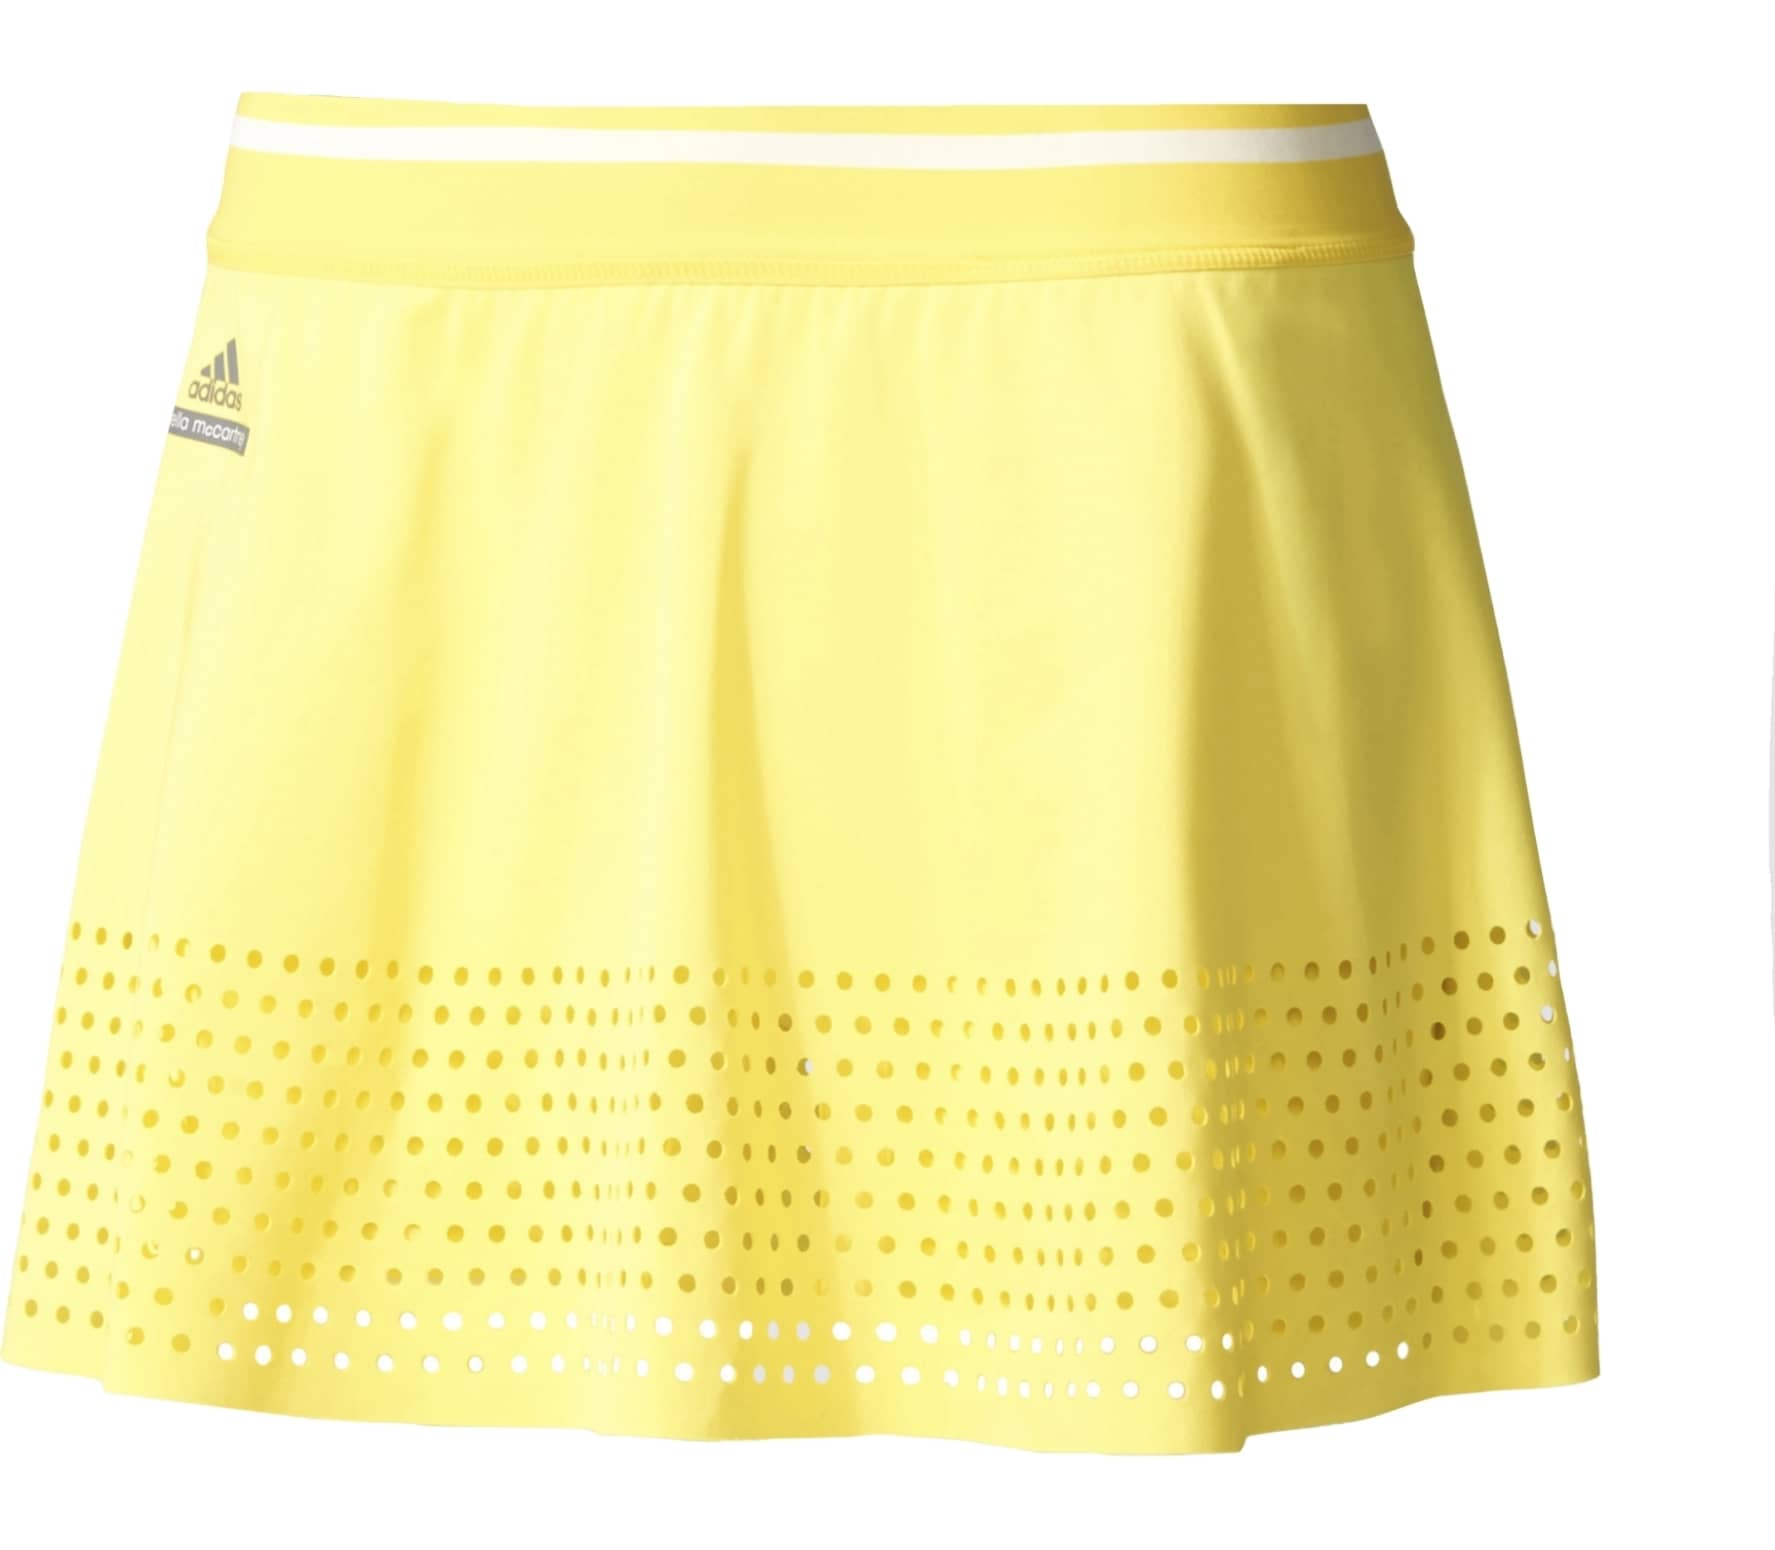 adidas Stella McCartney women's tennis skirt Damen